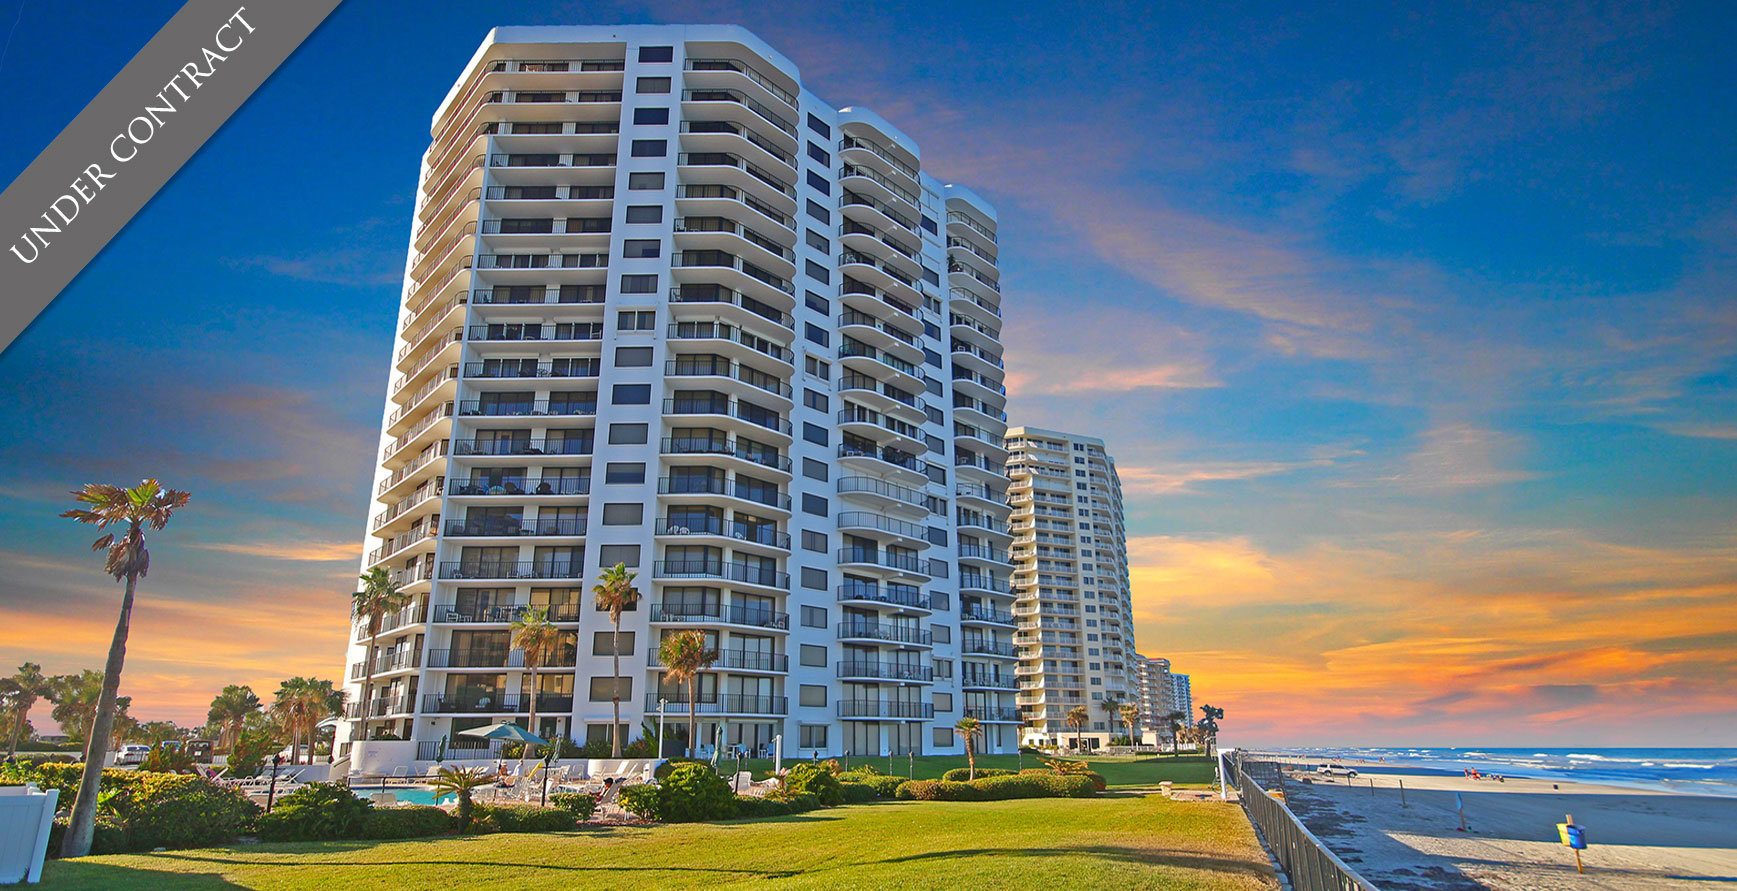 Sherwin oceanfront condos For Sale at 2555 S Atlantic Ave Daytona Beach  Shores The LUXE Group 386-299-4043